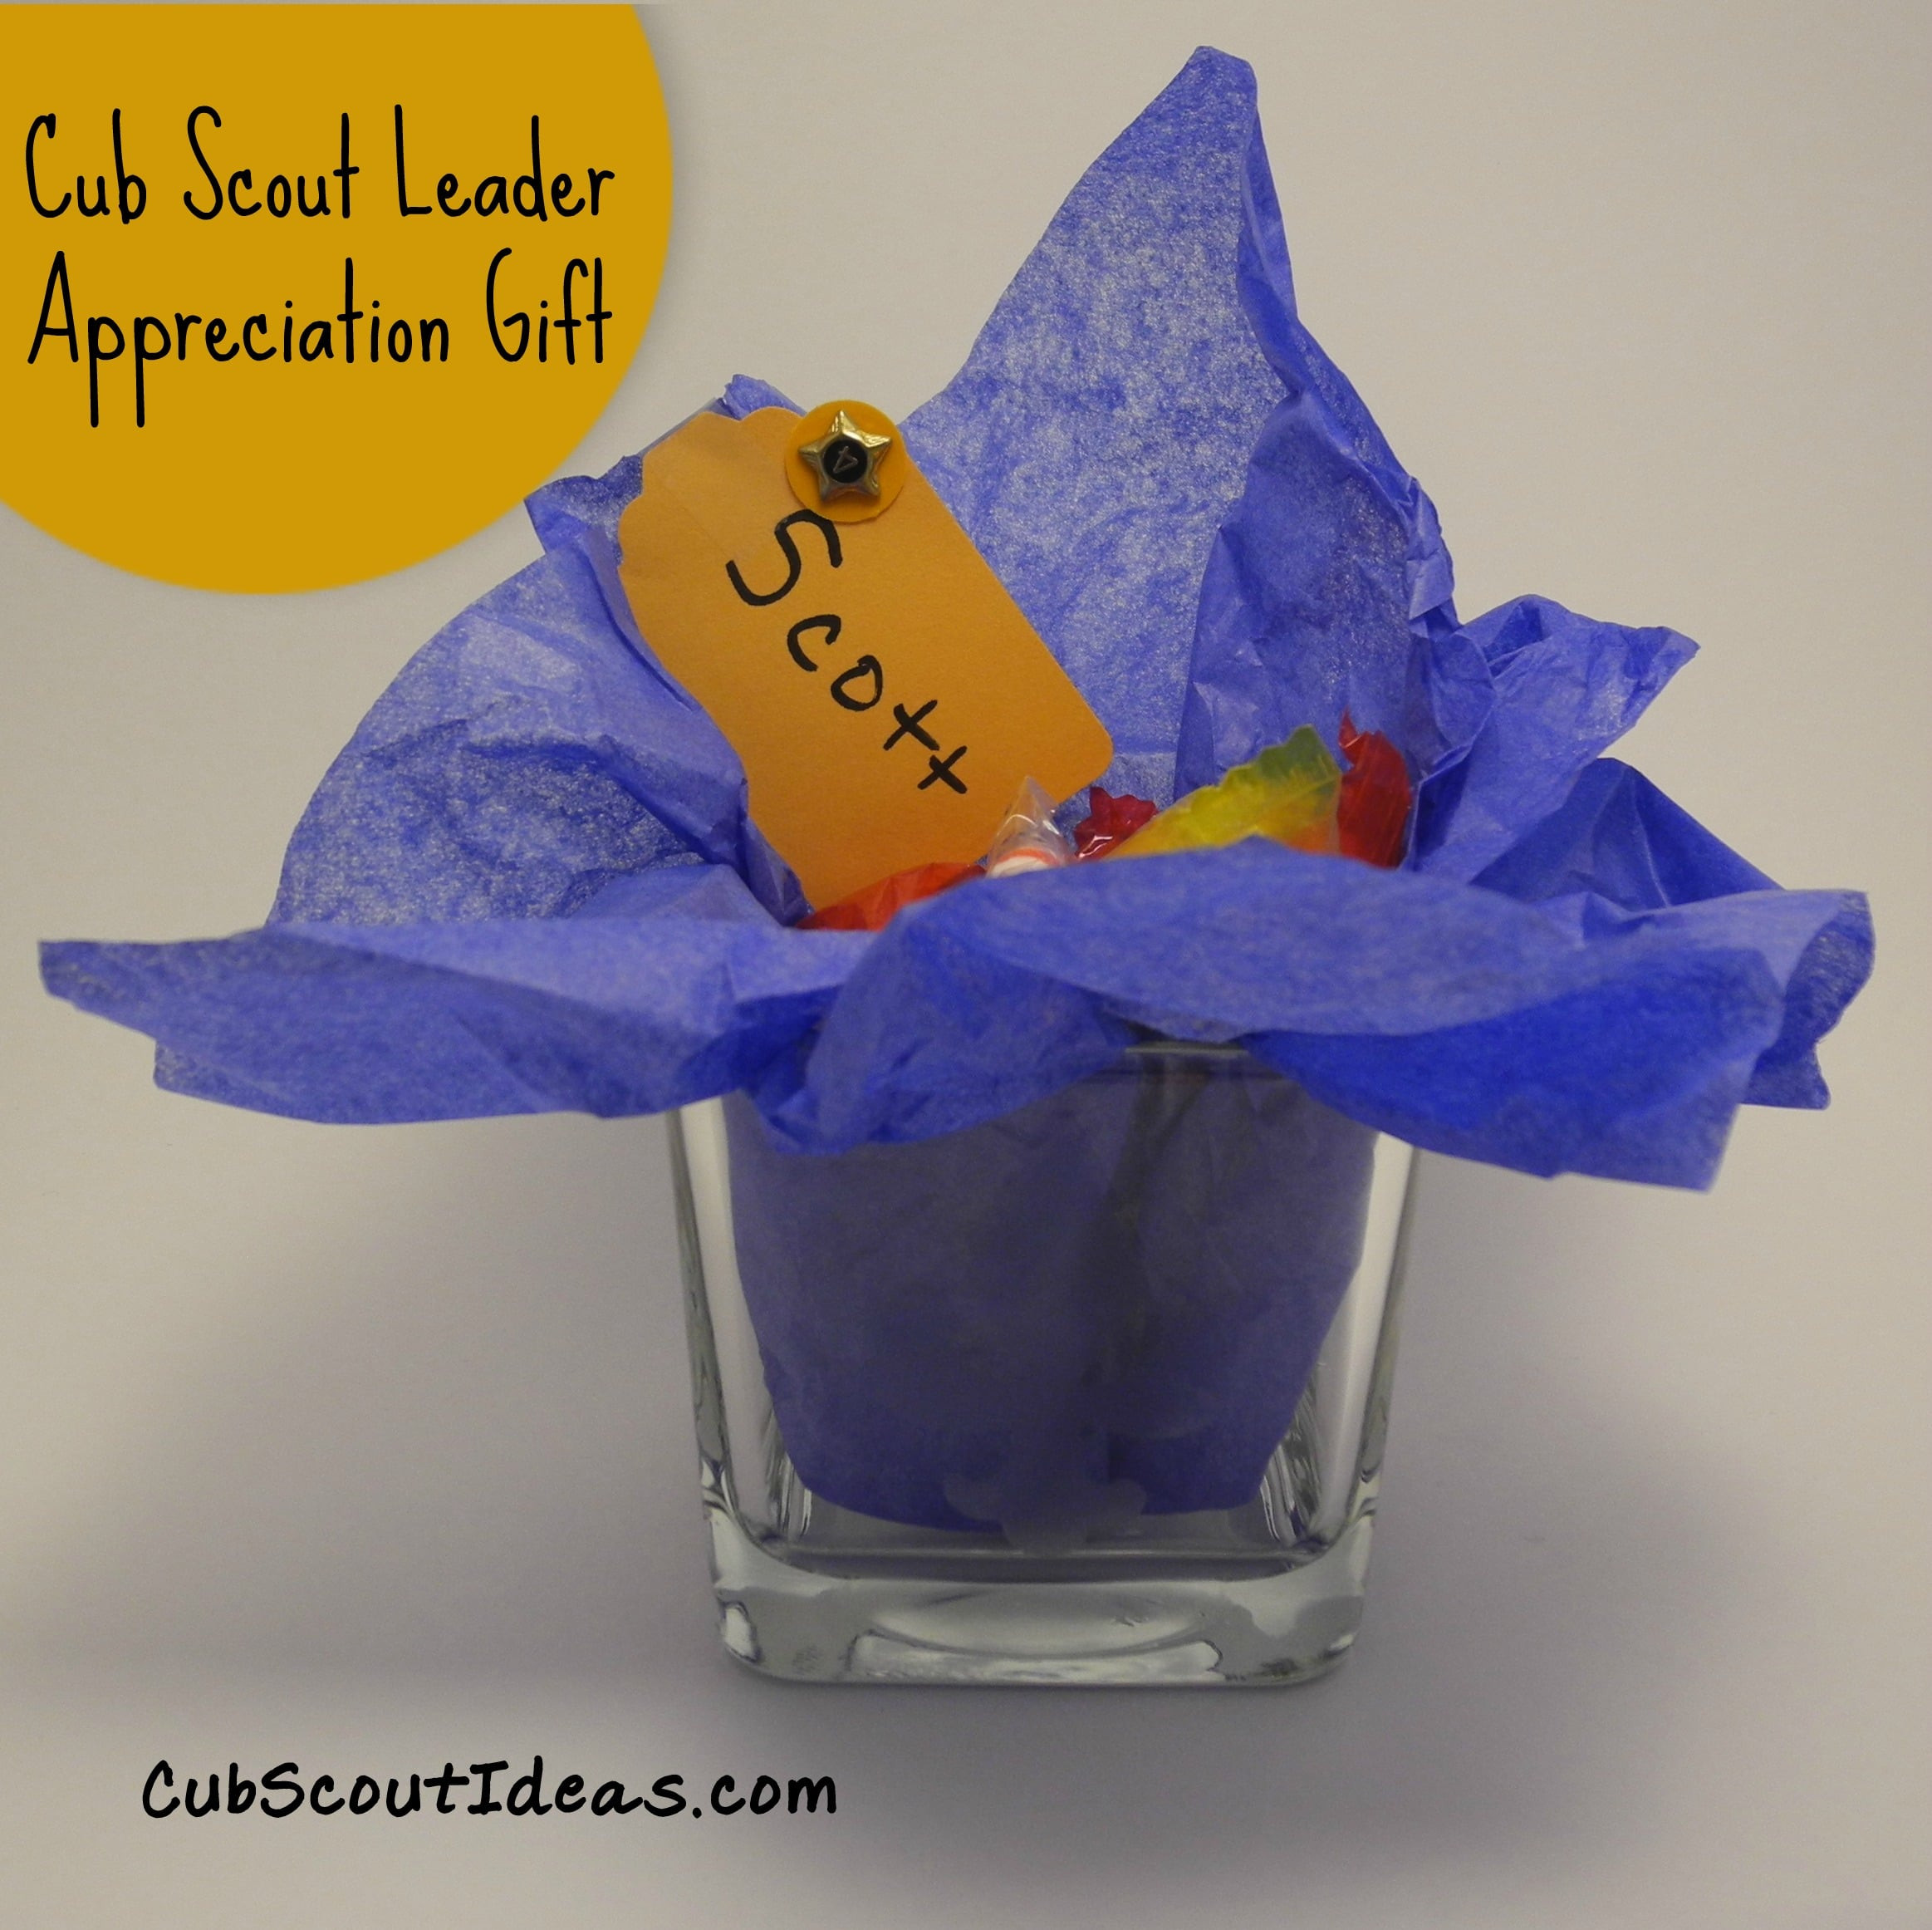 Best ideas about Boy Scout Gift Ideas . Save or Pin Cub Scout Leader Appreciation Gifts Now.